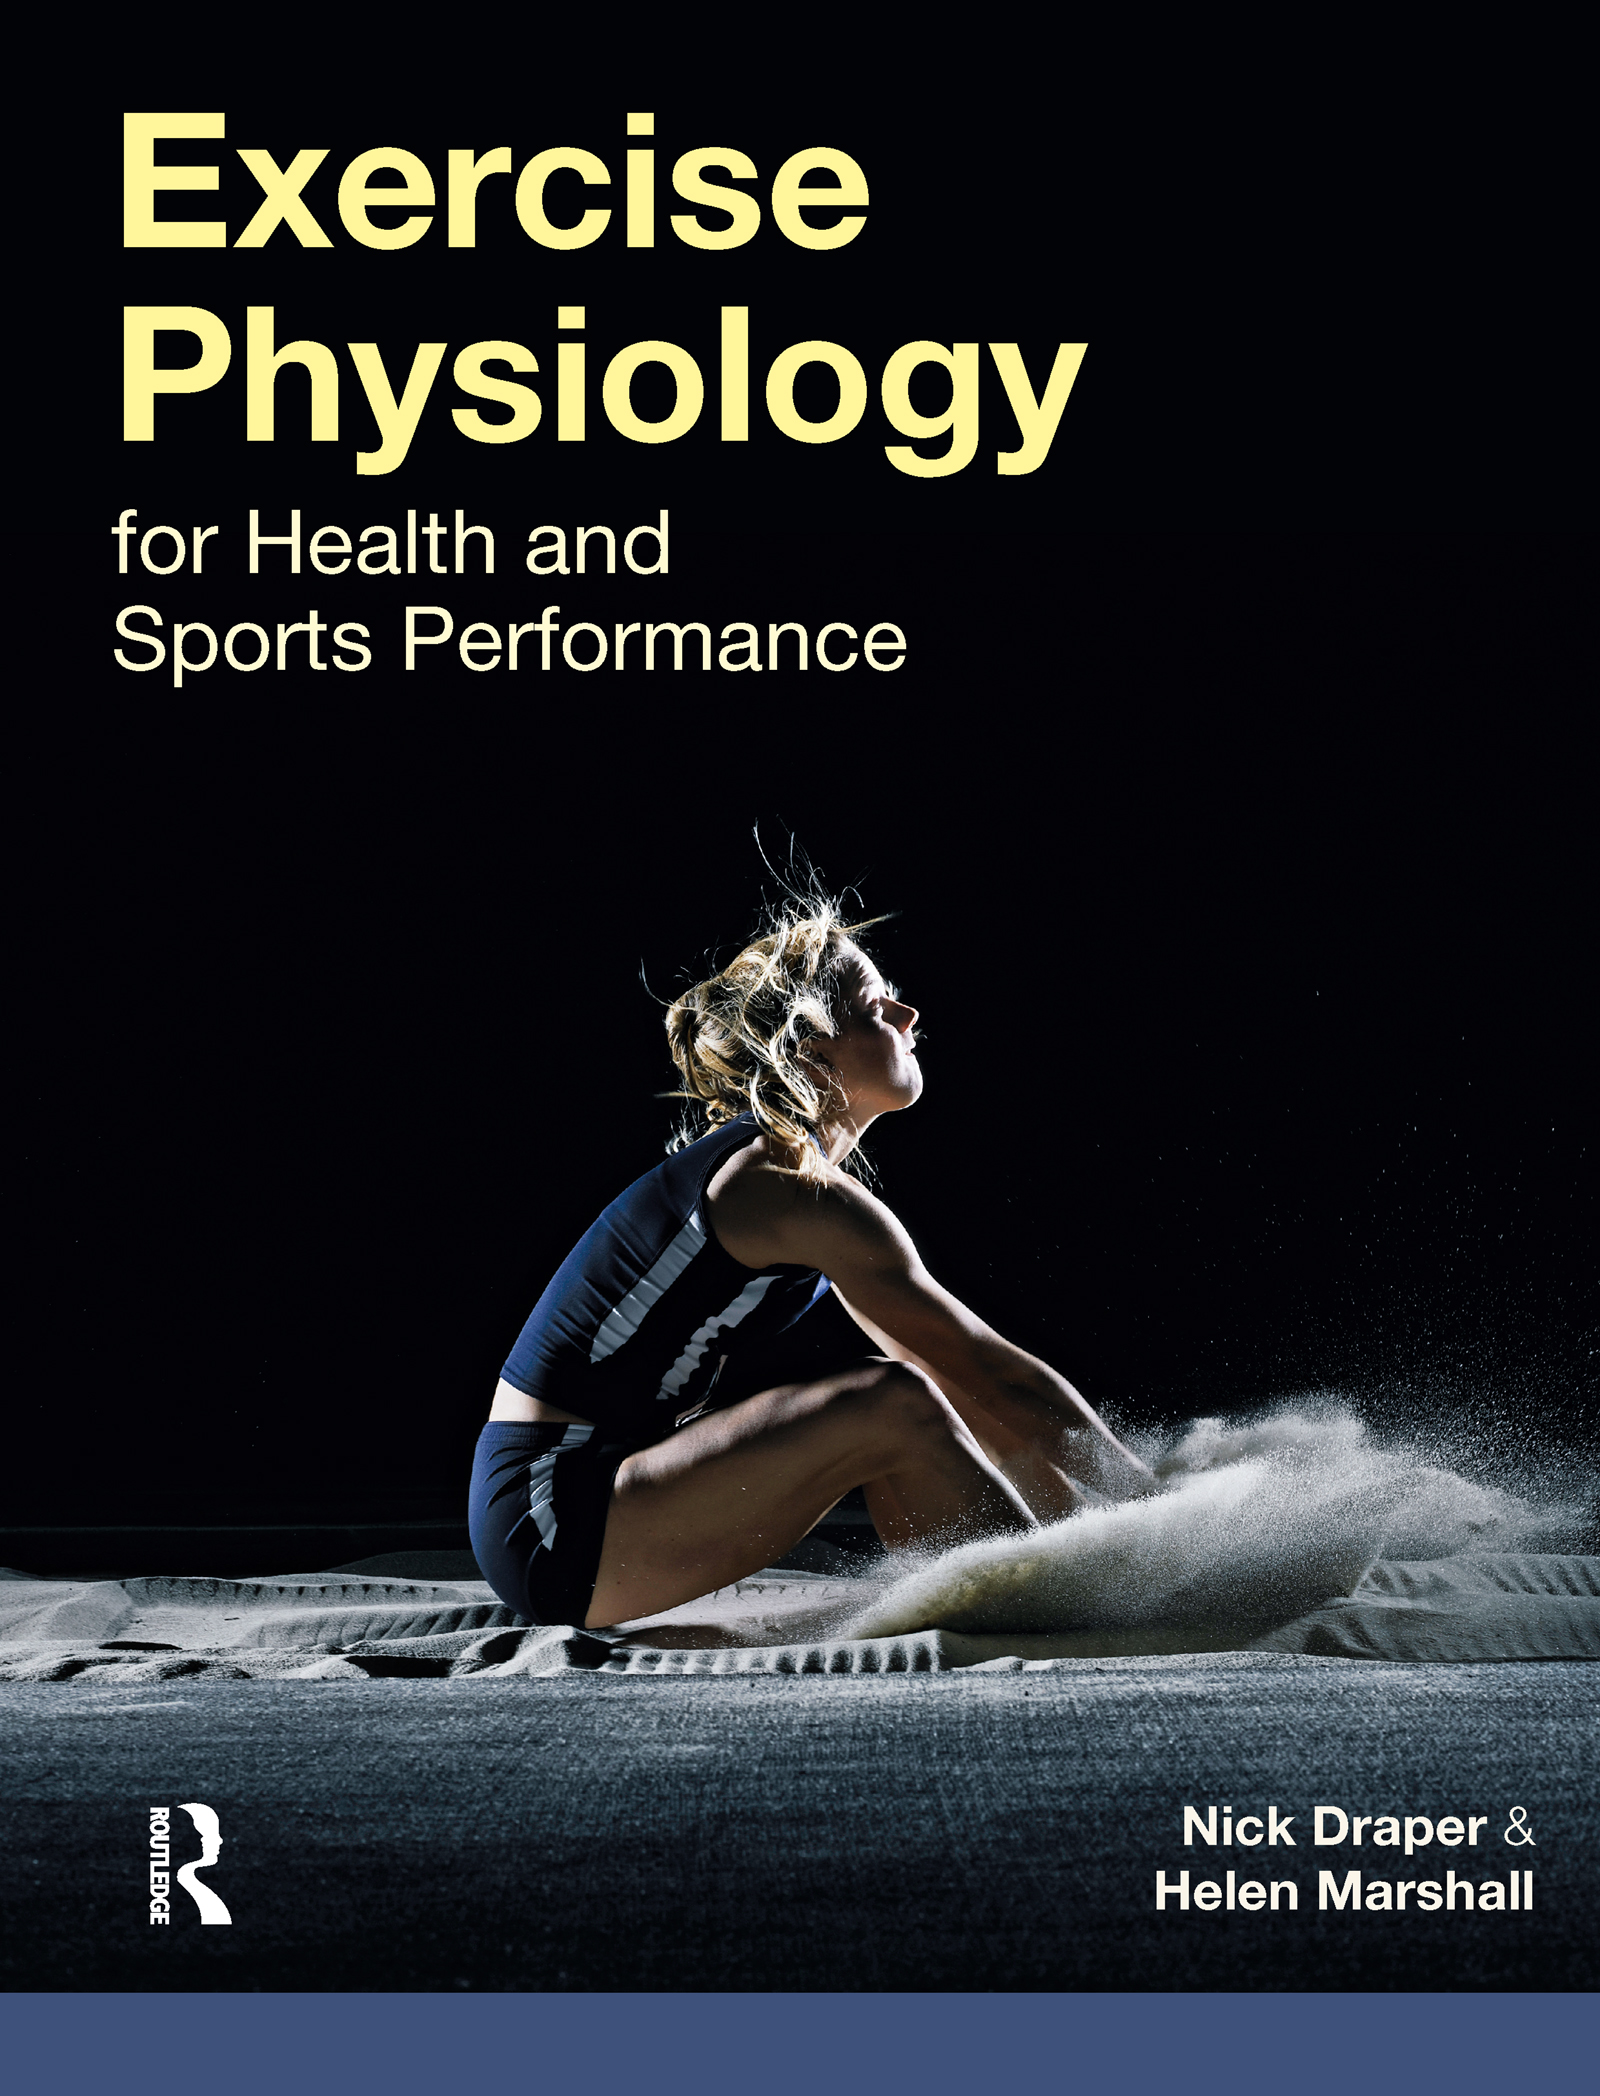 Exercise Physiology: for Health and Sports Performance book cover